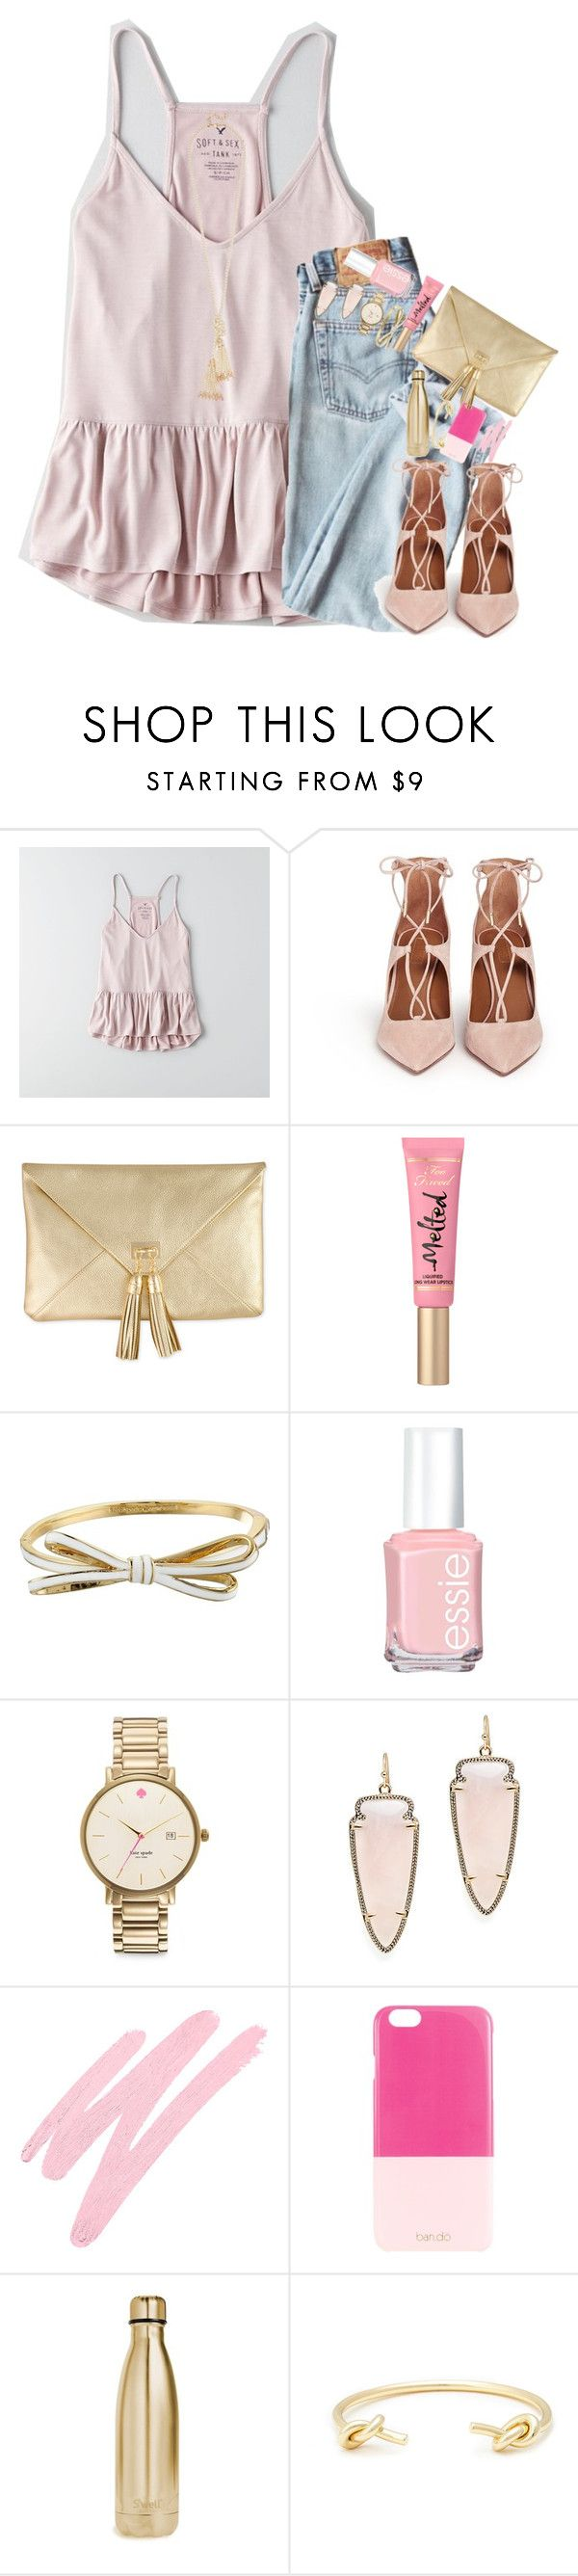 """when u low don't wanna hang"" by kate-elizabethh ❤ liked on Polyvore featuring American Eagle Outfitters, Aquazzura, Kate Spade, Essie, Kendra Scott, NARS Cosmetics, ban.do, S'well, Sole Society and Kenneth Jay Lane"